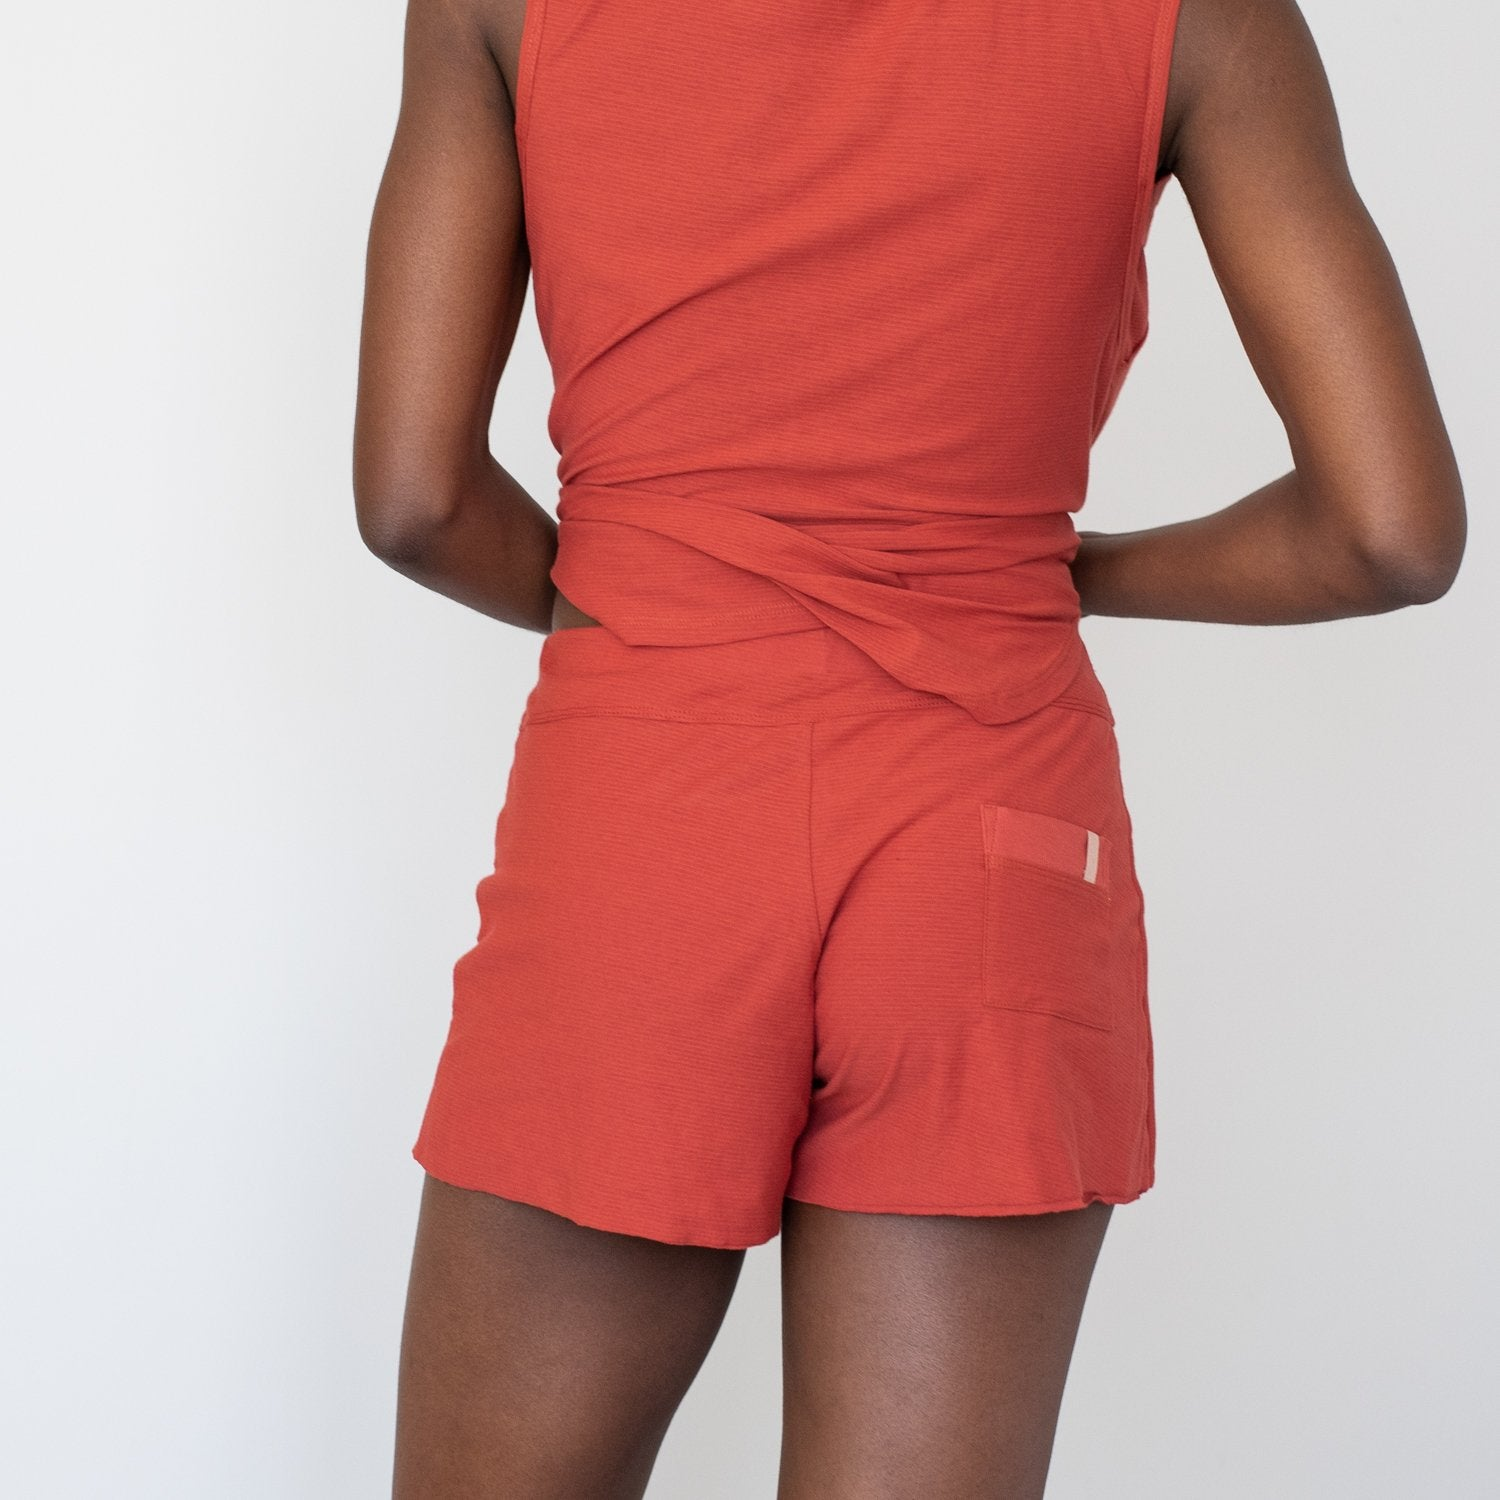 Lunya Sleepwear Cool Short - #Dawn